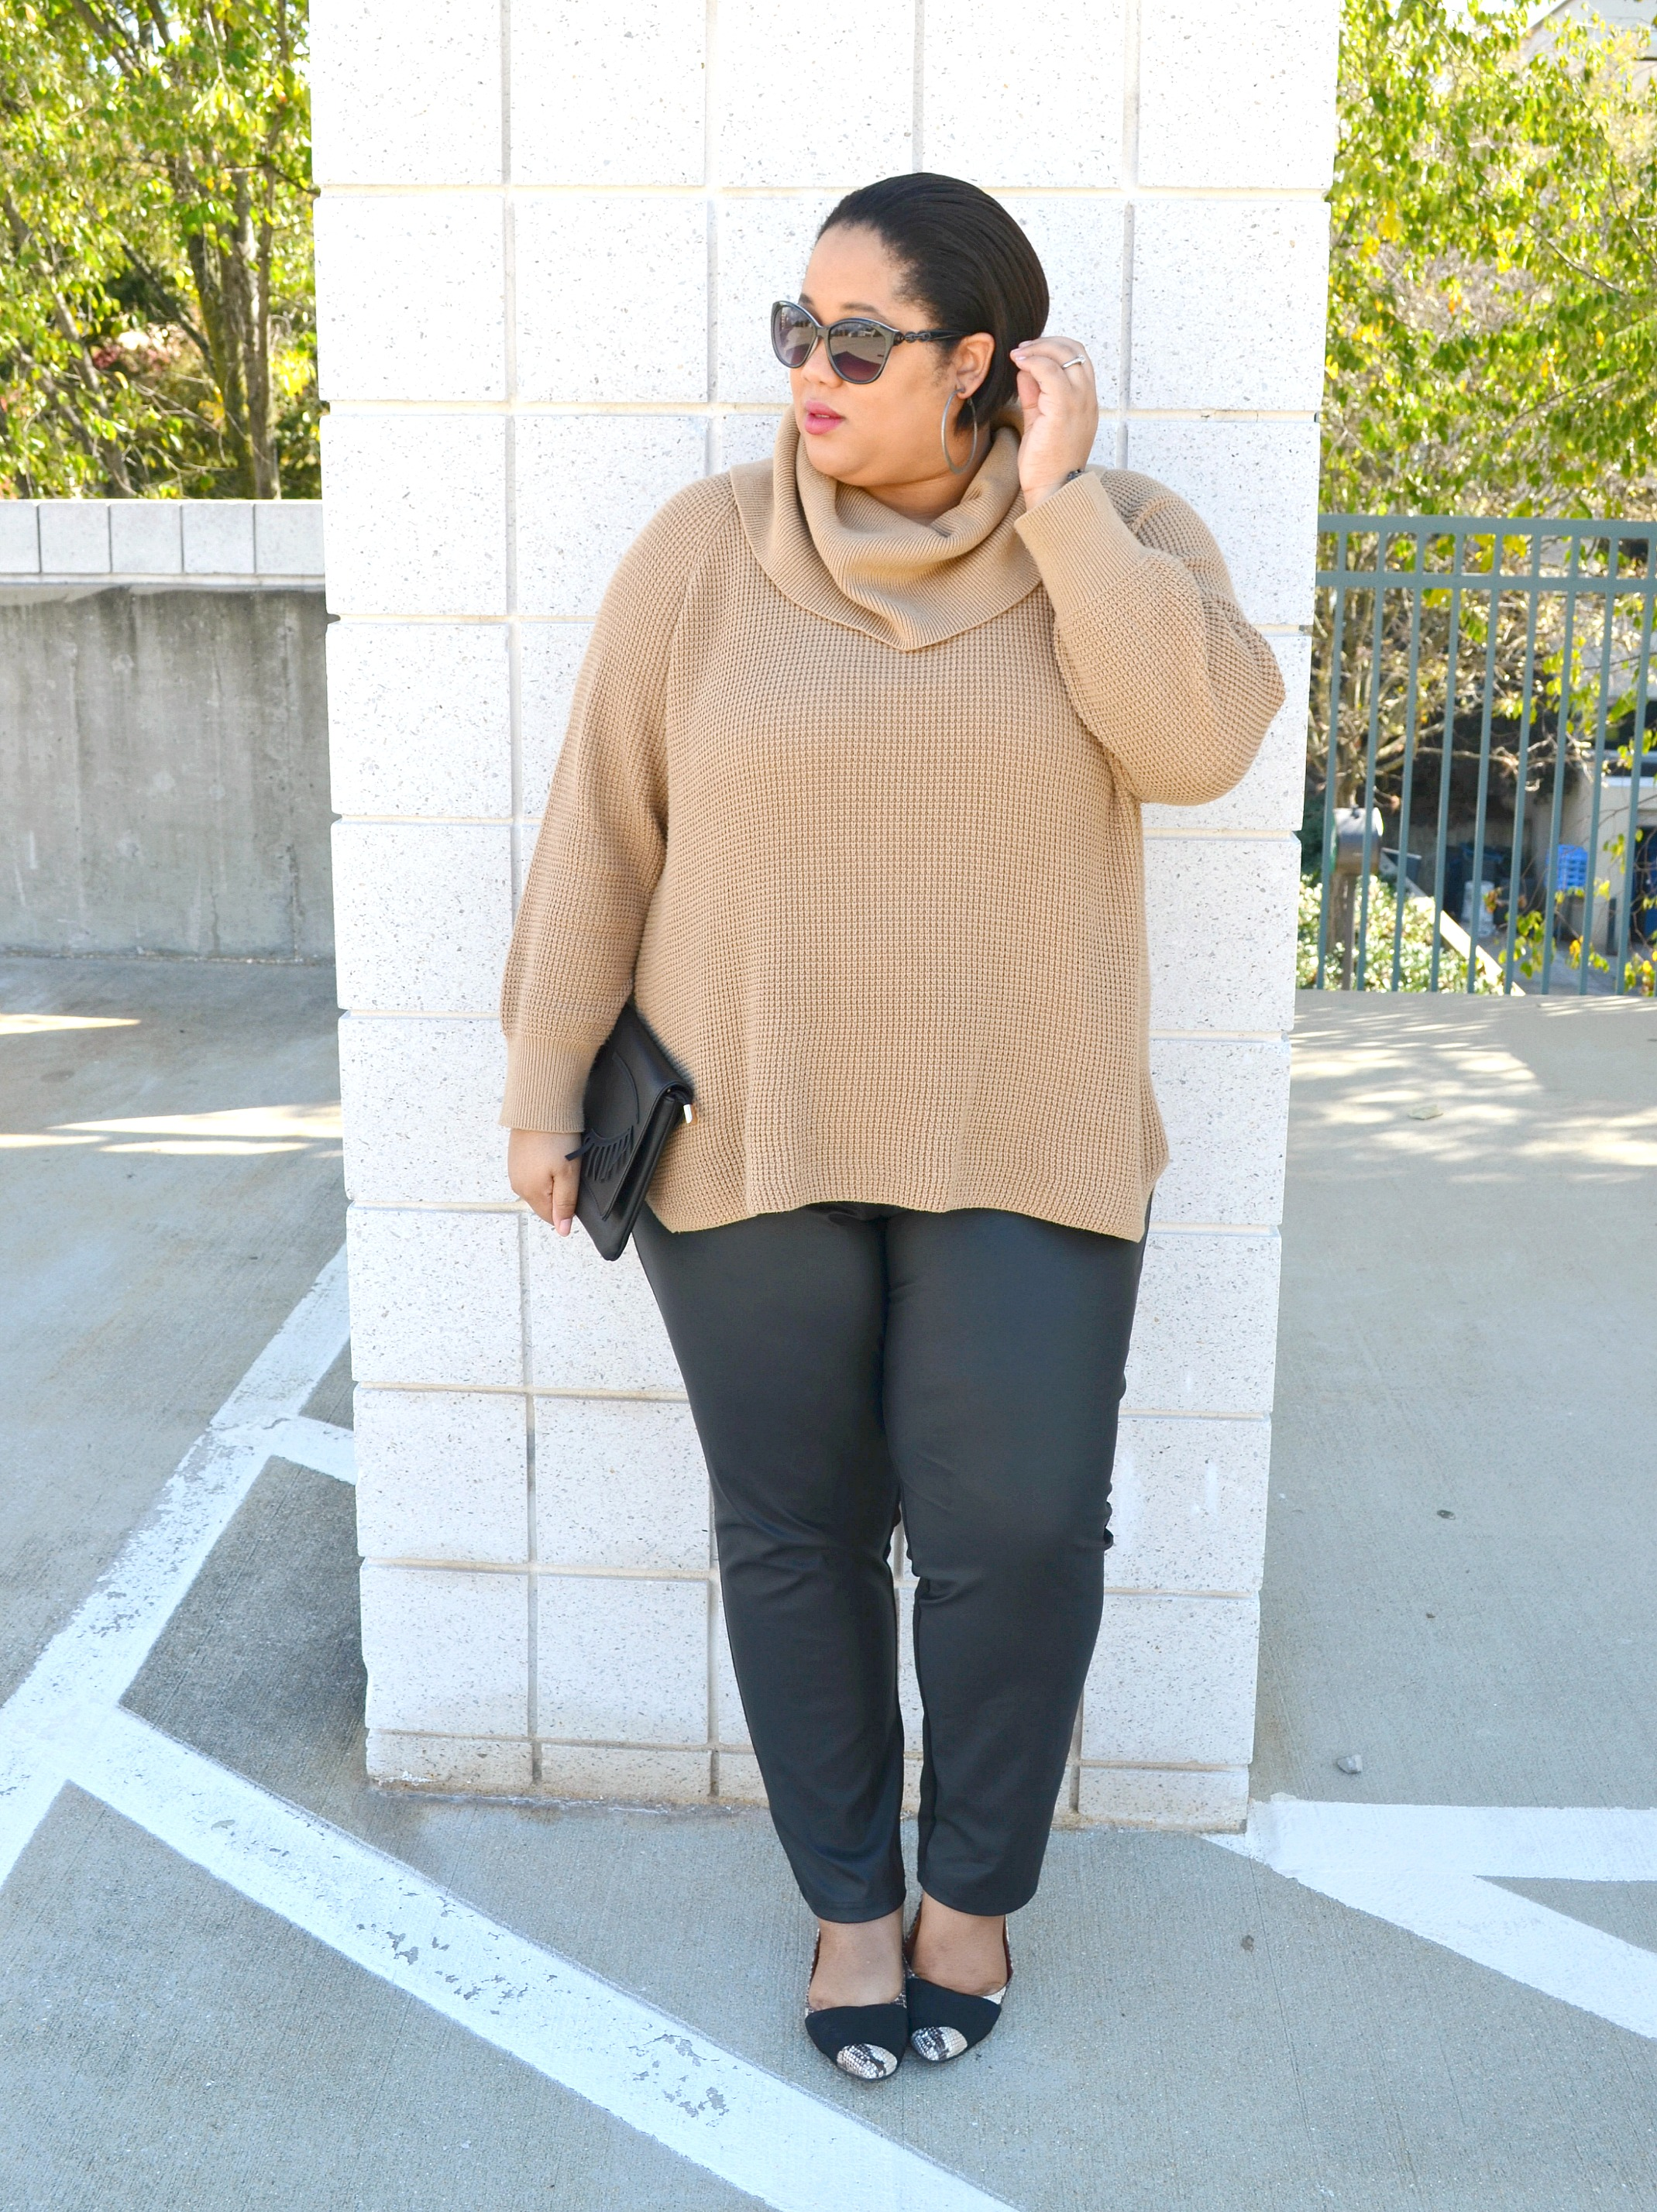 Chunky Sweaters and Leggings OOTD